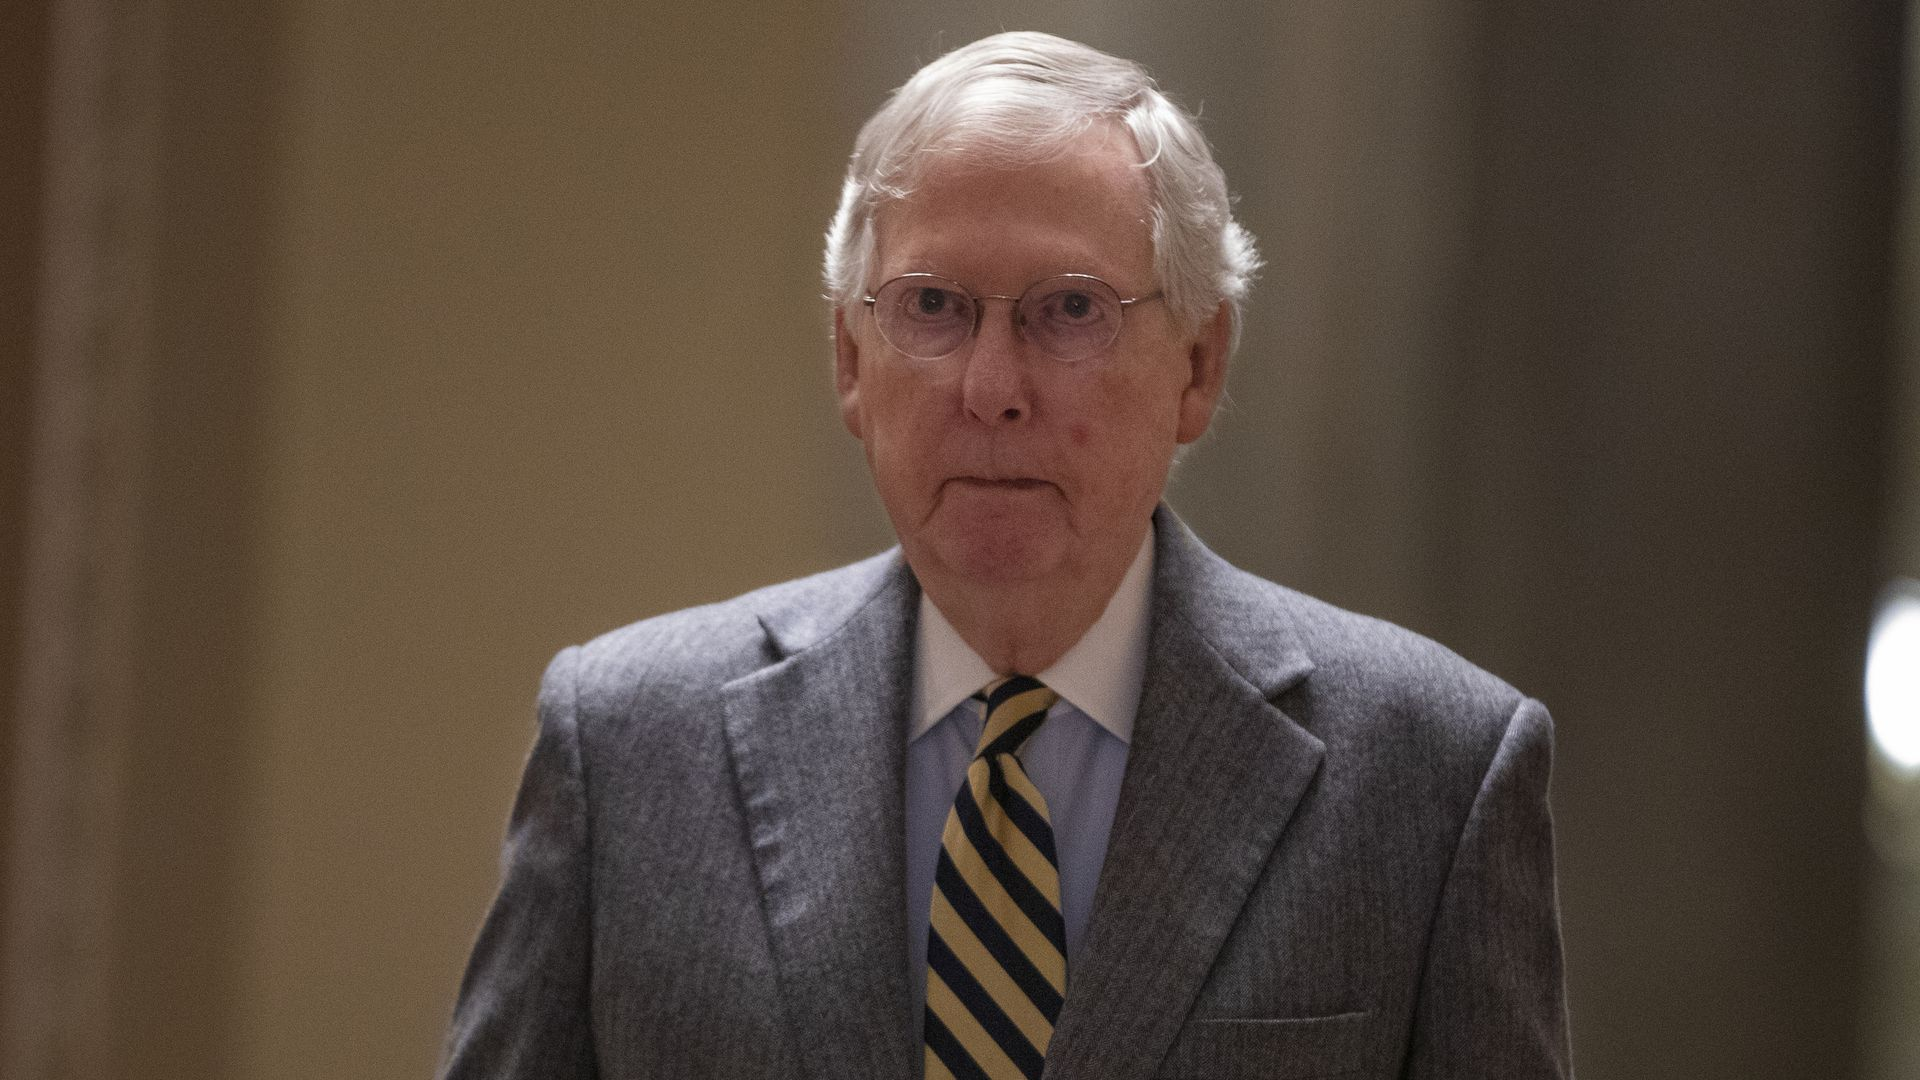 Fix Our Senate launches to target McConnell